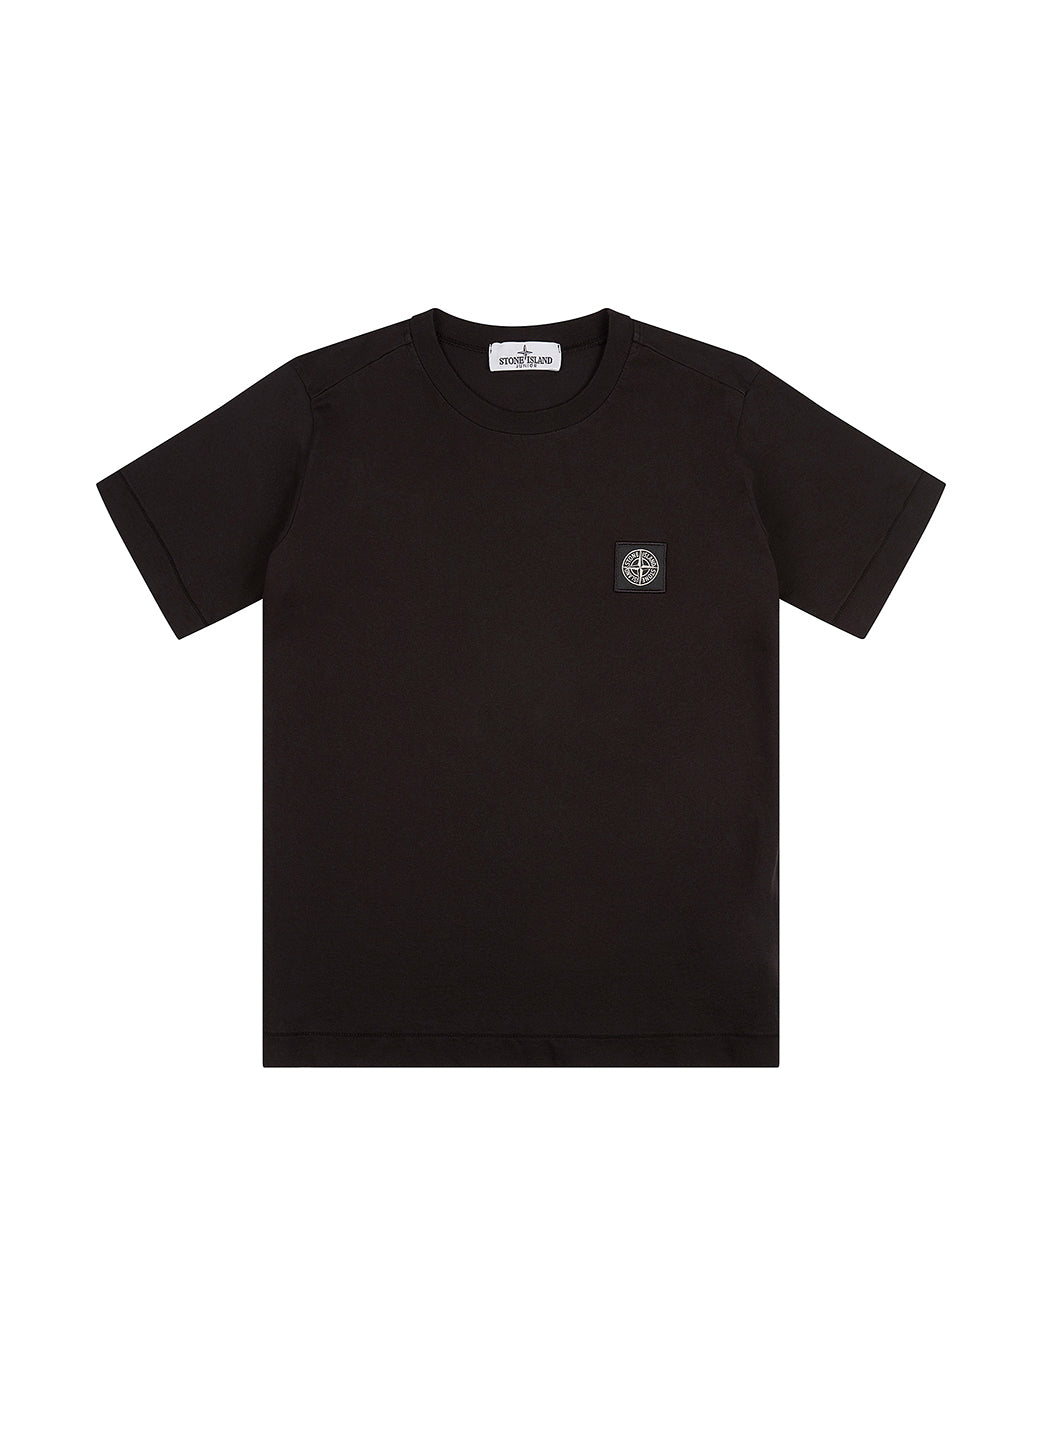 20147 T-Shirt in Black